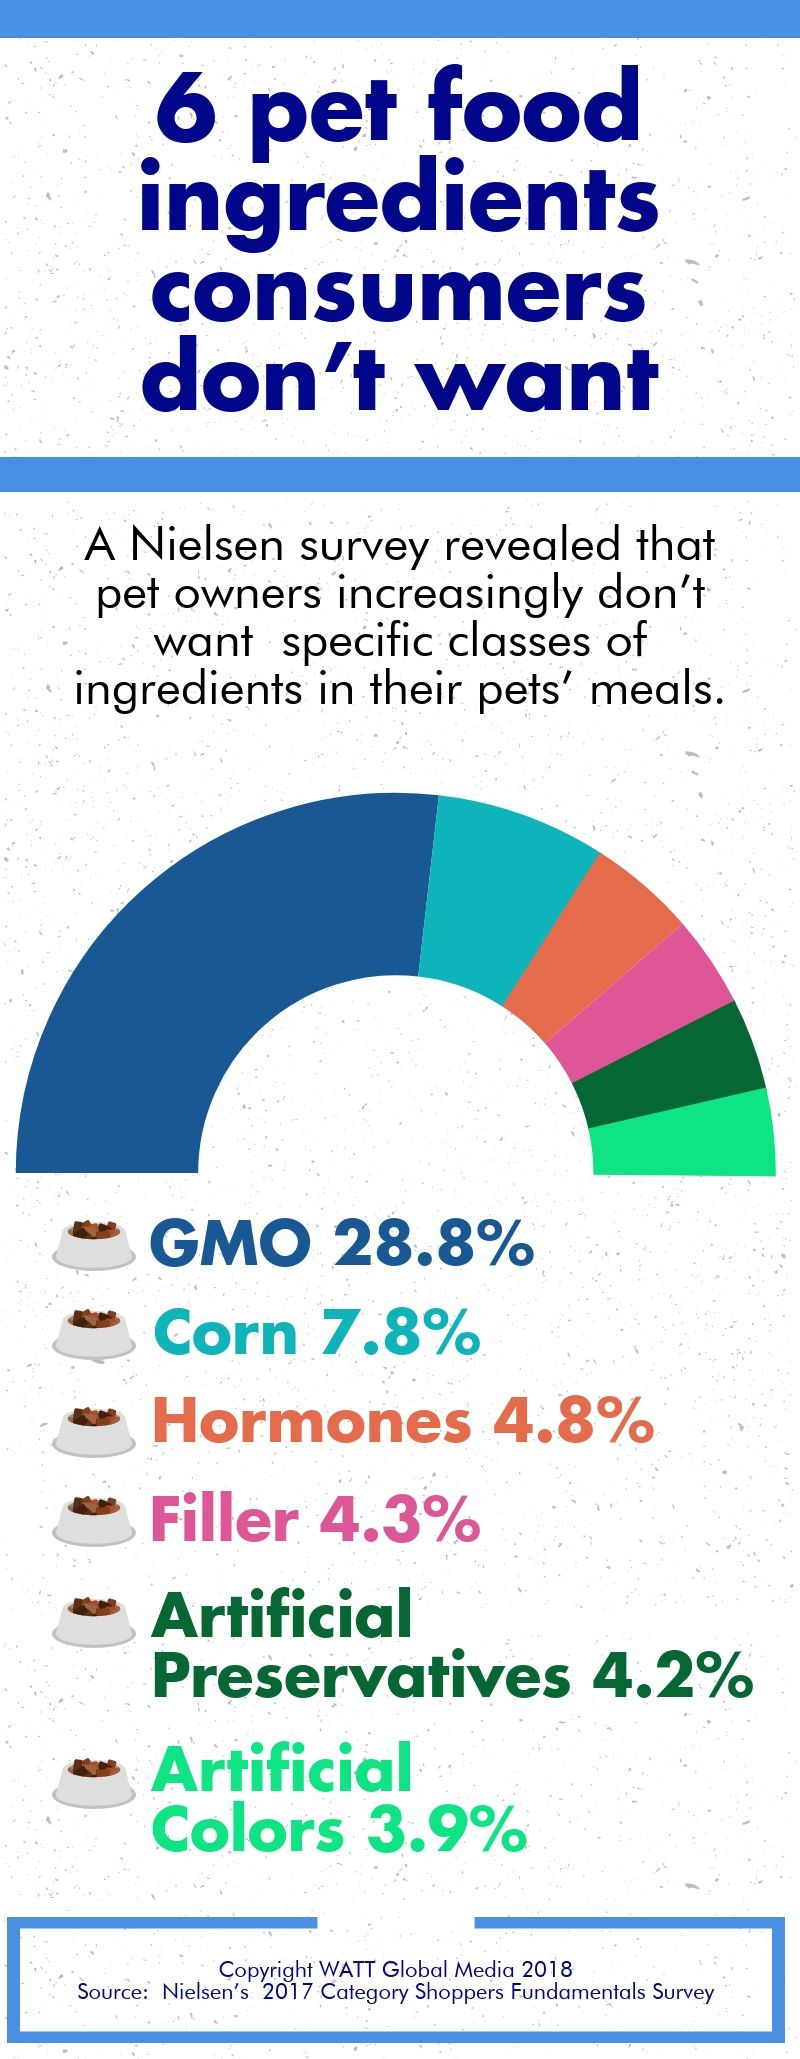 6-pet-food-ingredients-consumers-dont-want-INFOGRAPHIC.v2.jpg